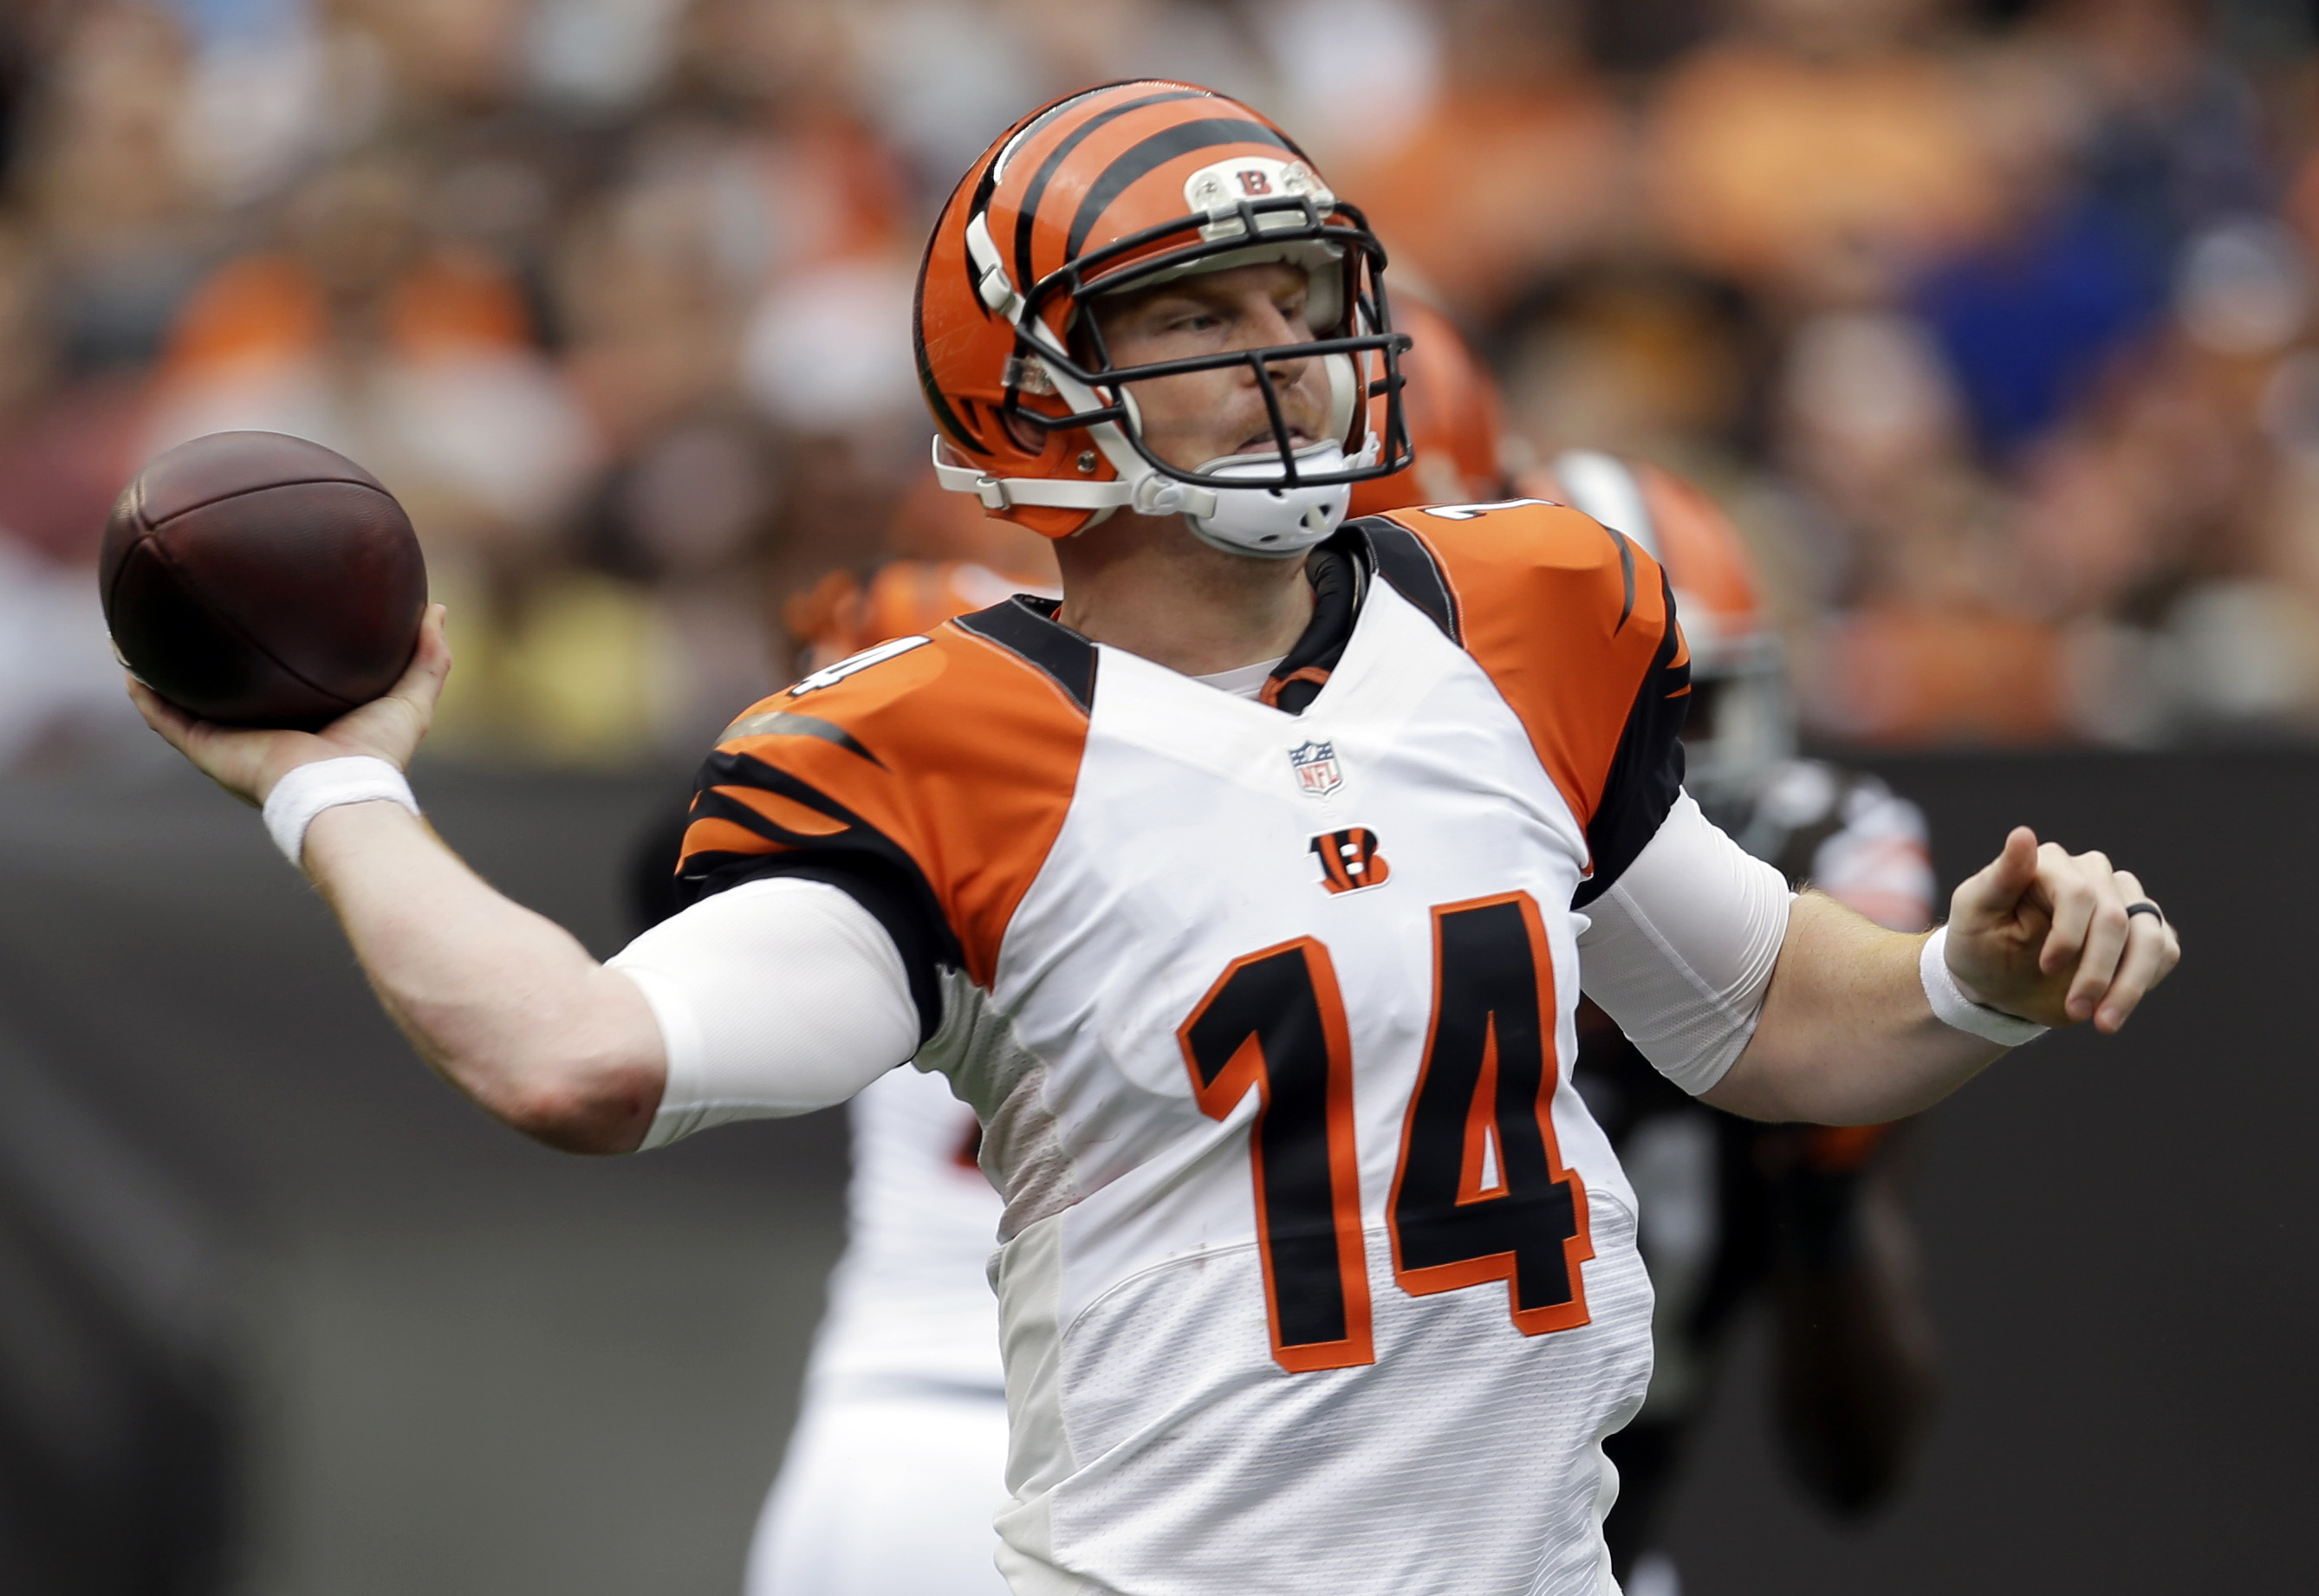 Cincinnati Bengals quarterback Andy Dalton passes in the third quarter of an NFL football game against the Cleveland Browns, Sunday, Sept. 29, 2013, in Cleveland